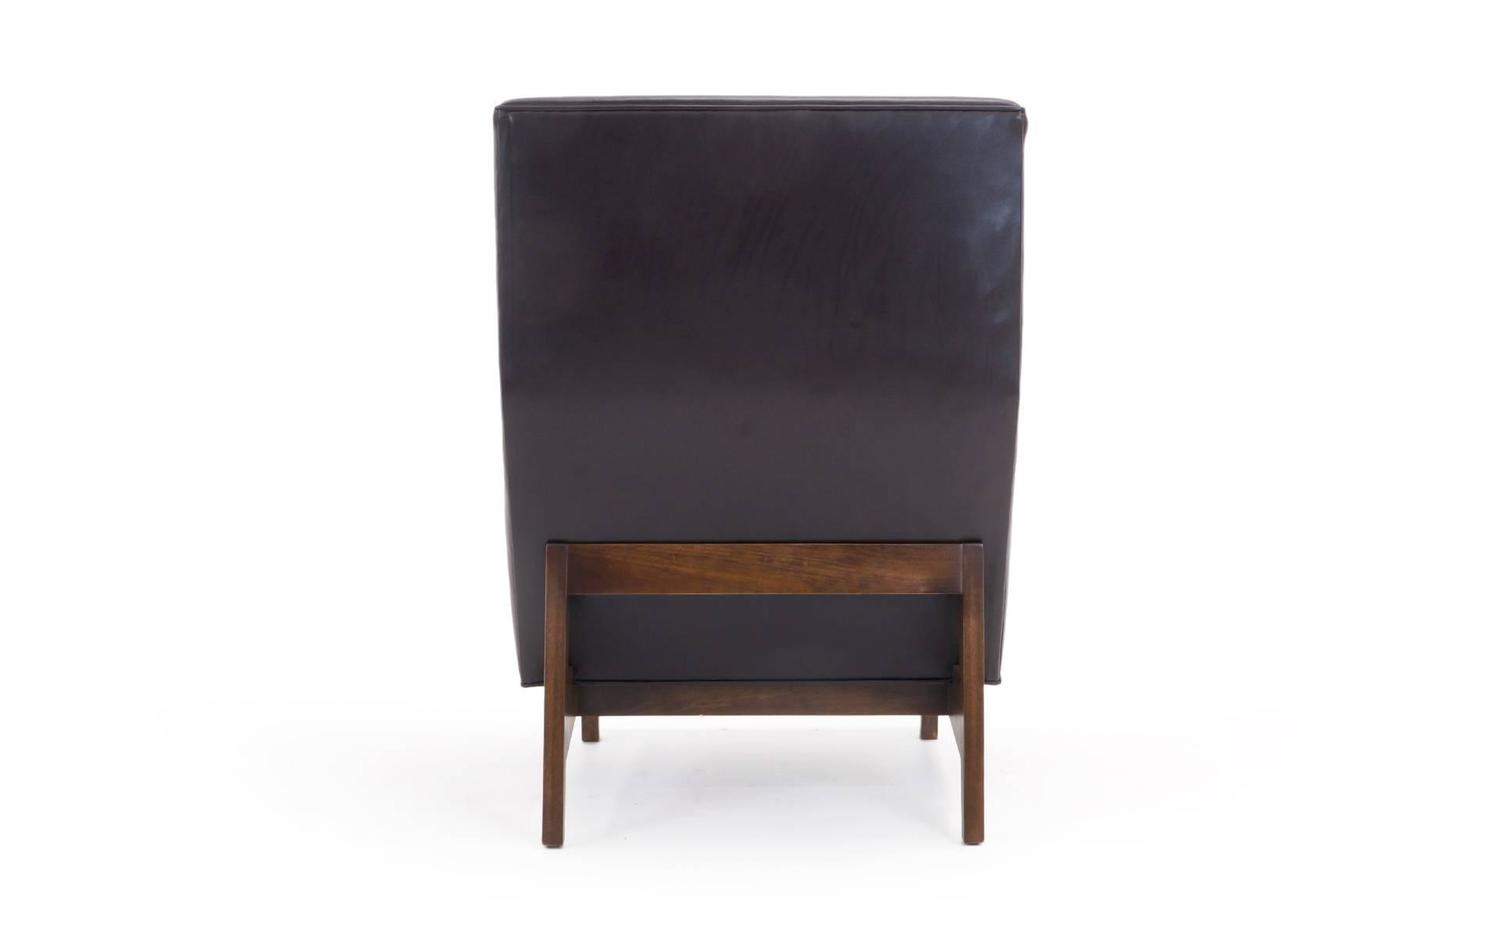 jens risom style custom made leather lounge chair for sale at 1stdibs